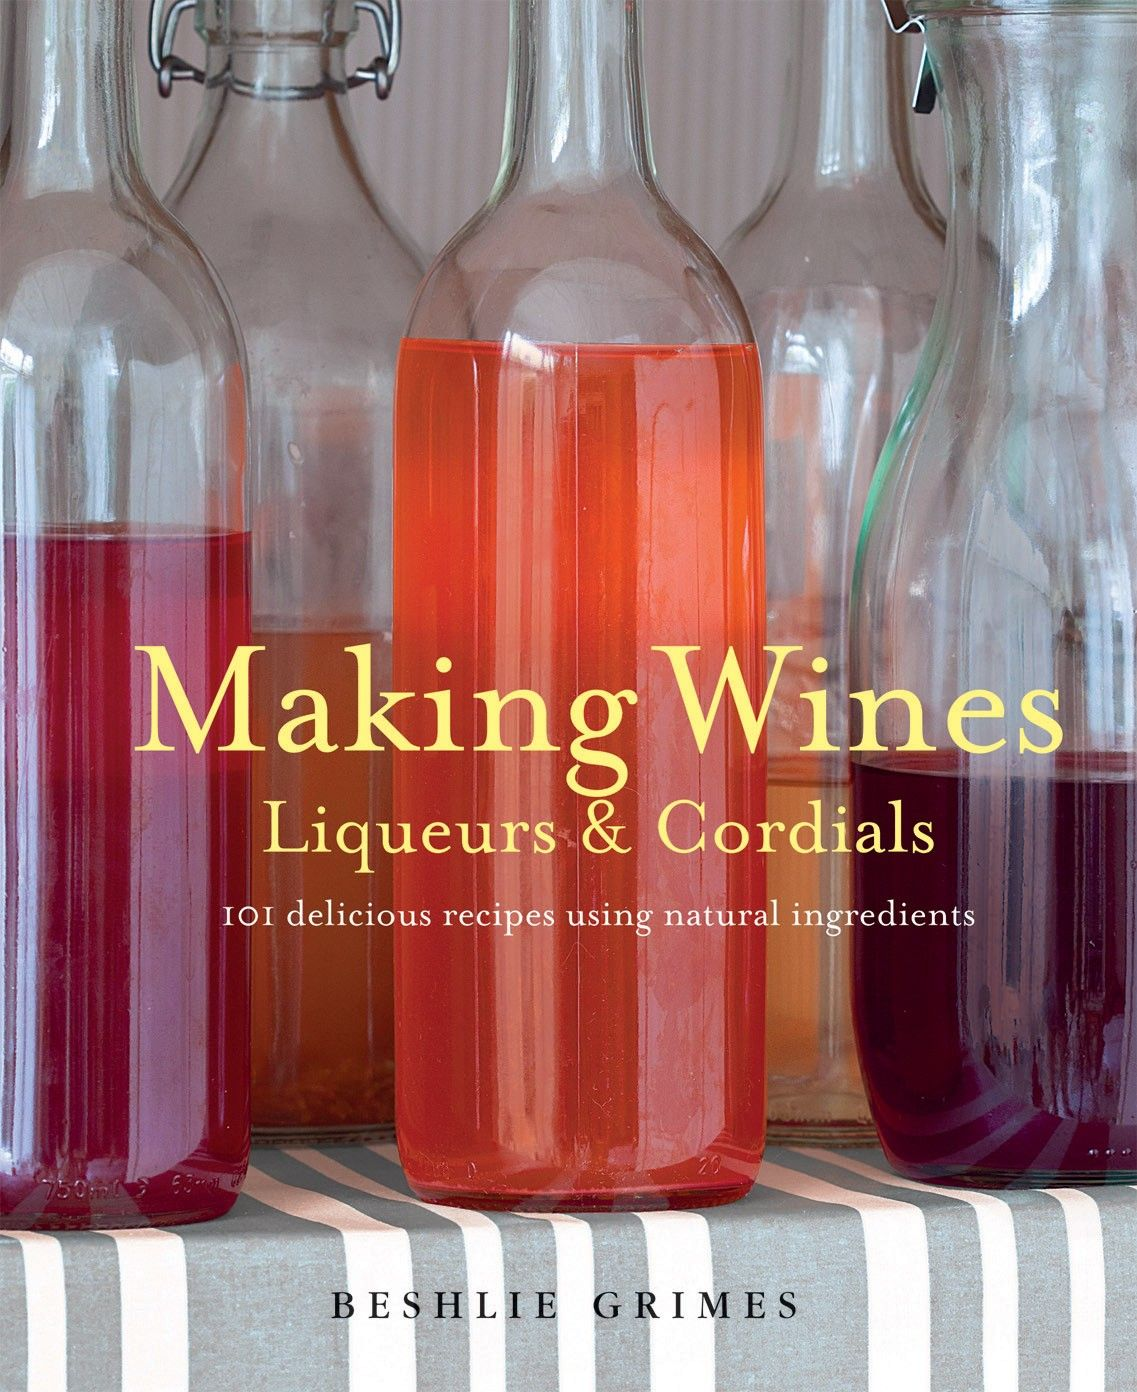 New Cocktail Books At The Gilded Lily Wine Making Wine Drinkers Making Wine At Home